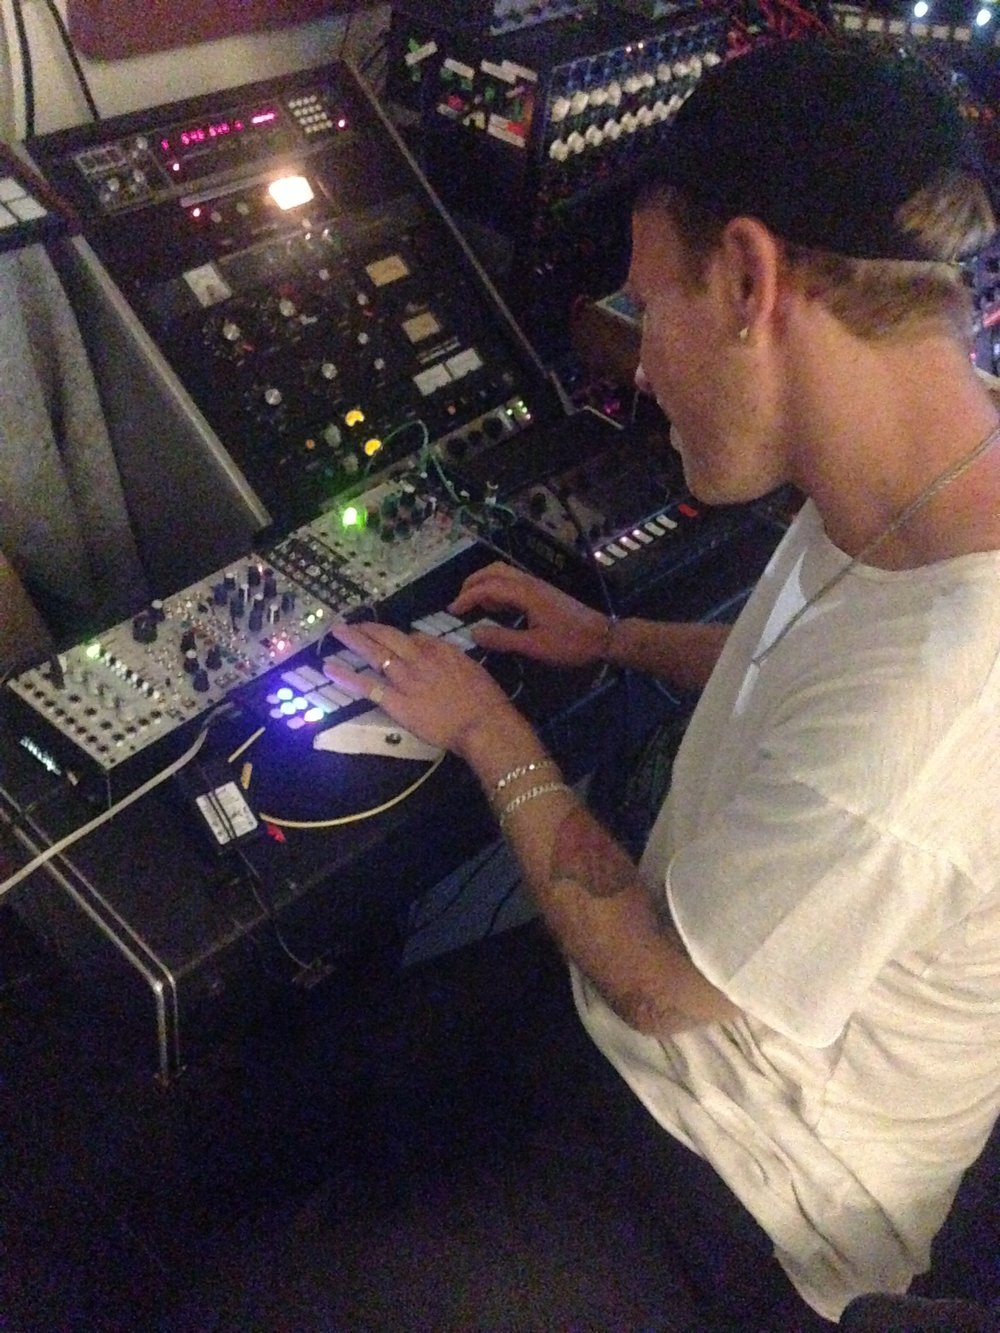 JAKE PLAYING MODULAR